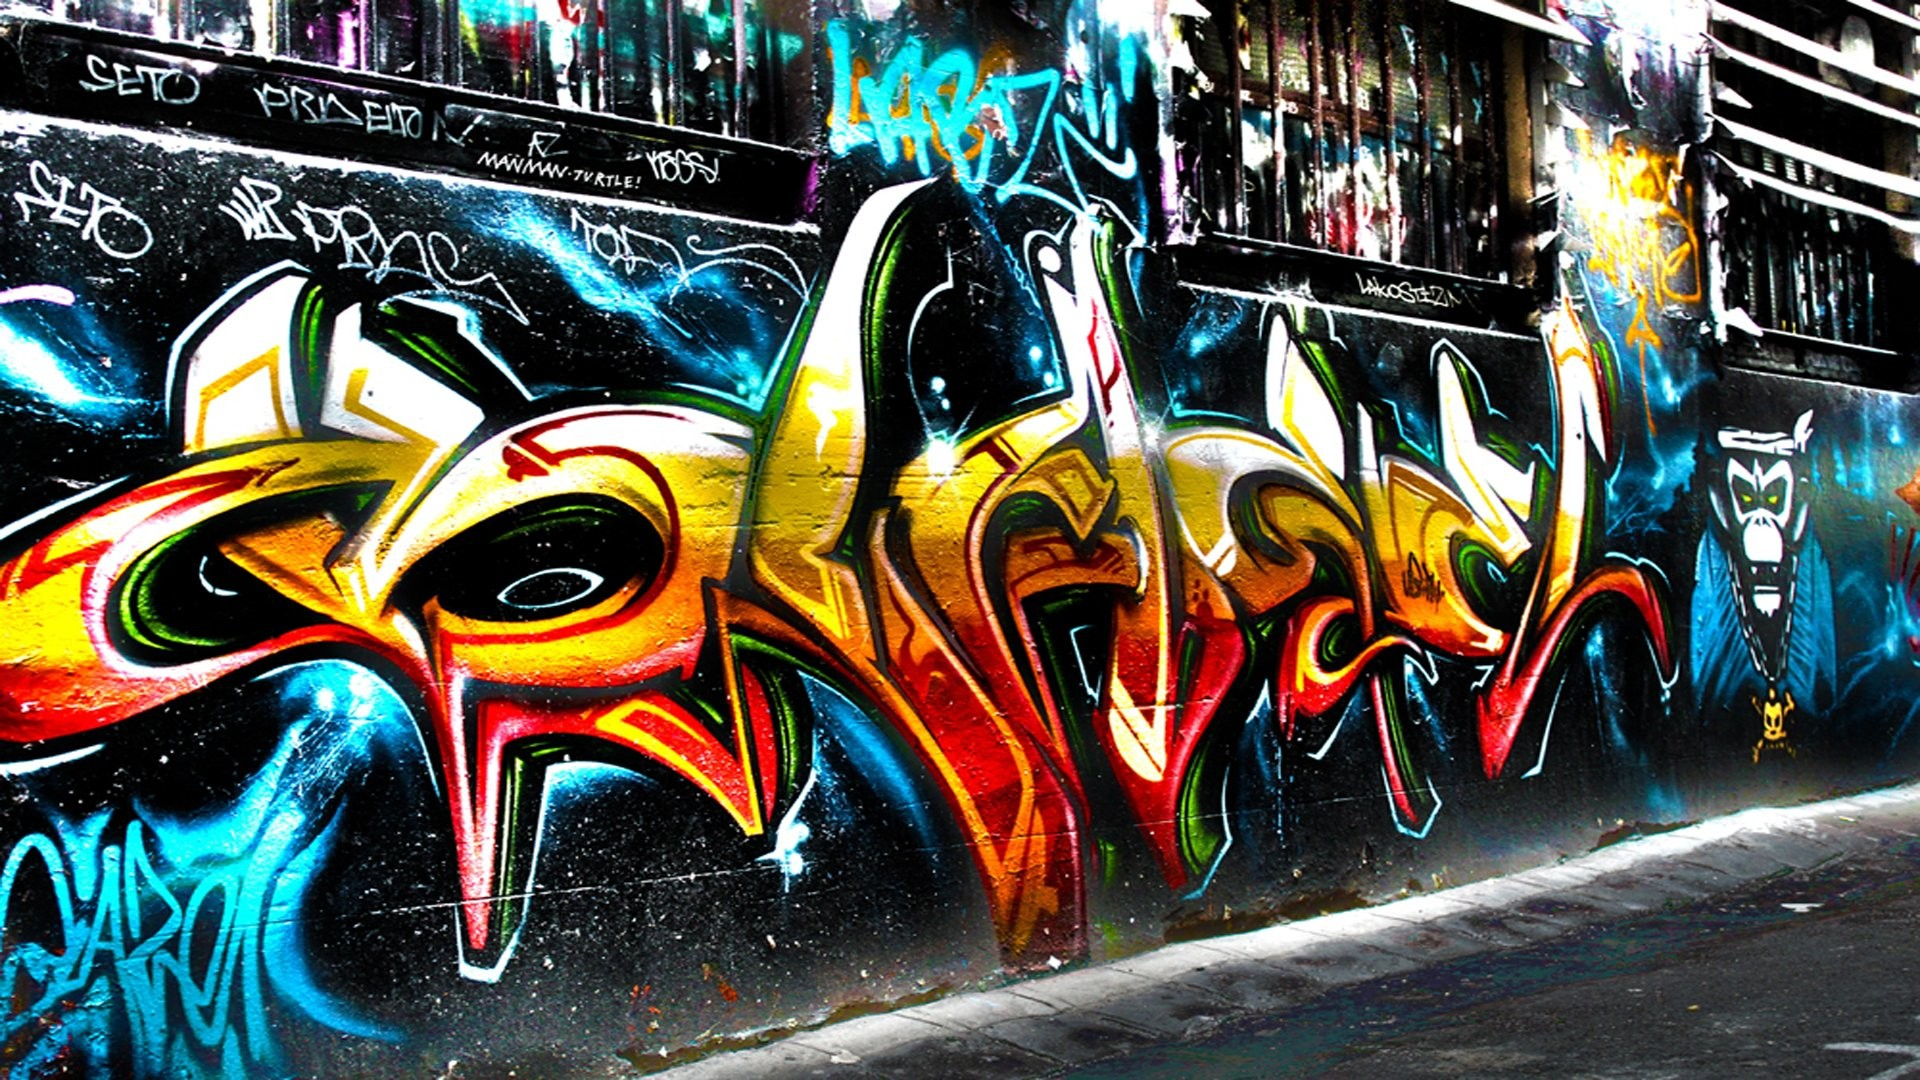 Artistic – Graffiti Trippy Psychedelic Urban Urban Art Wallpaper